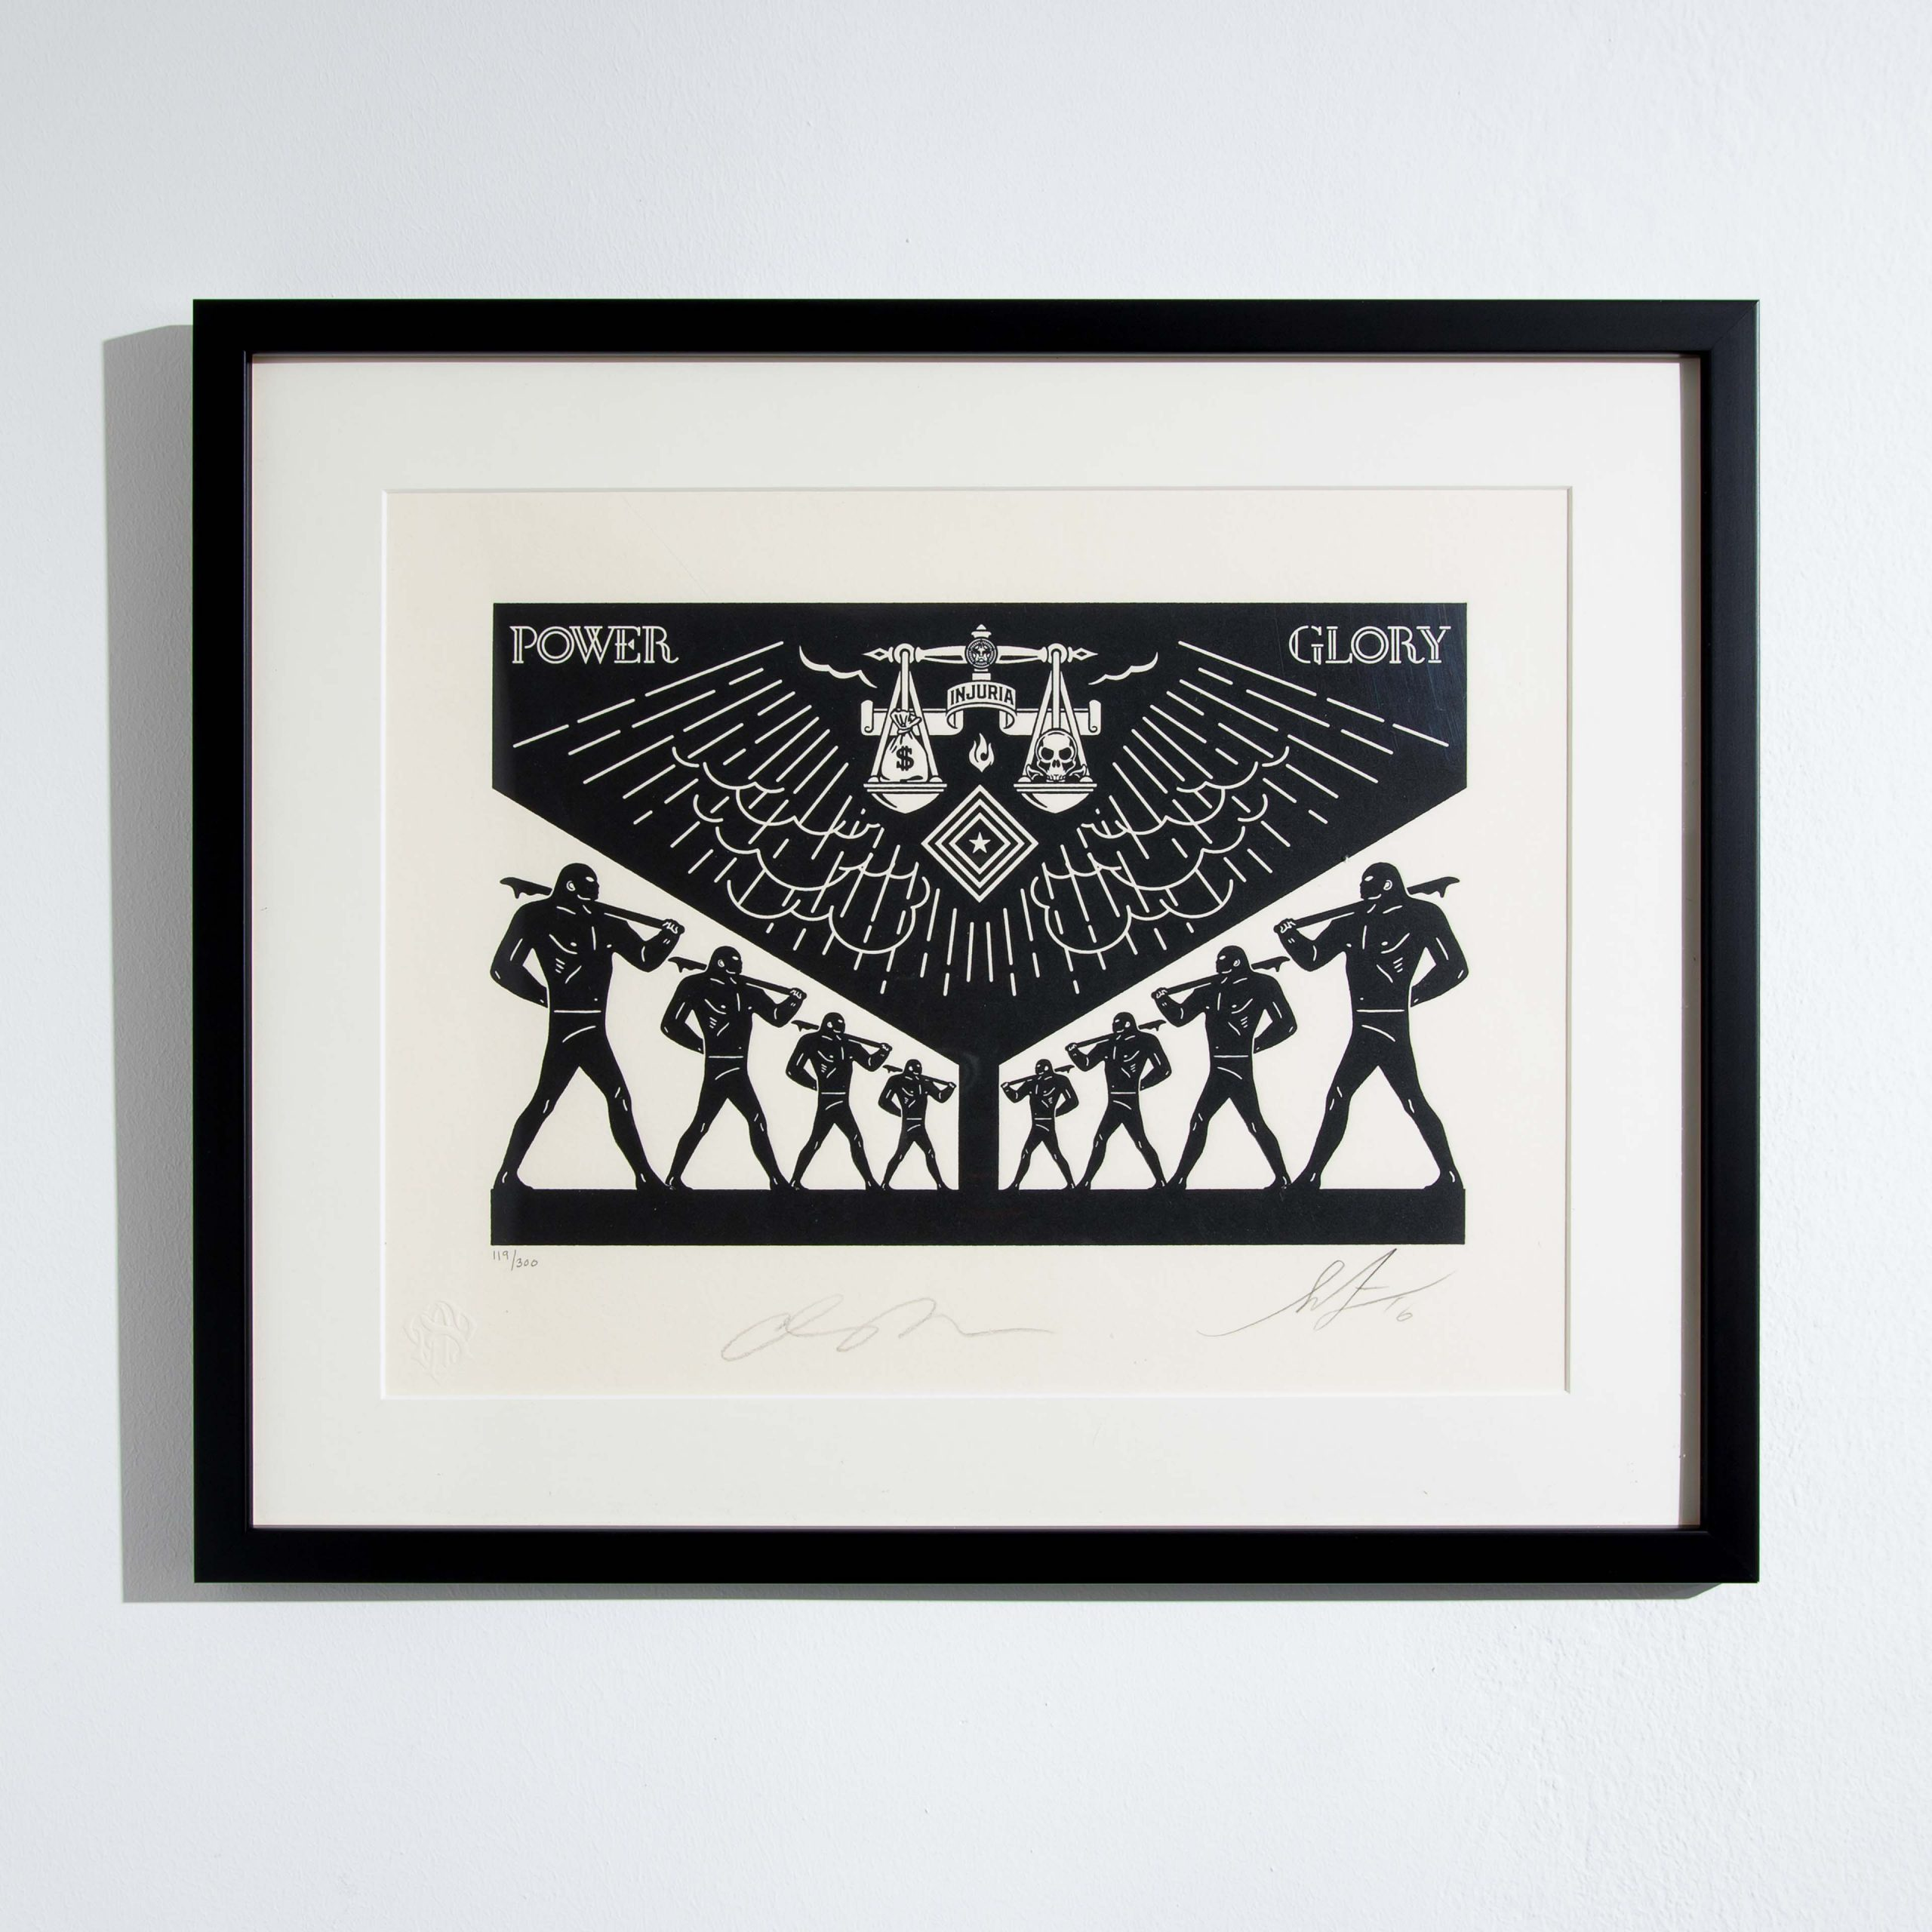 Scales of Injustice by Shepard Fairey & Cleon Peterson